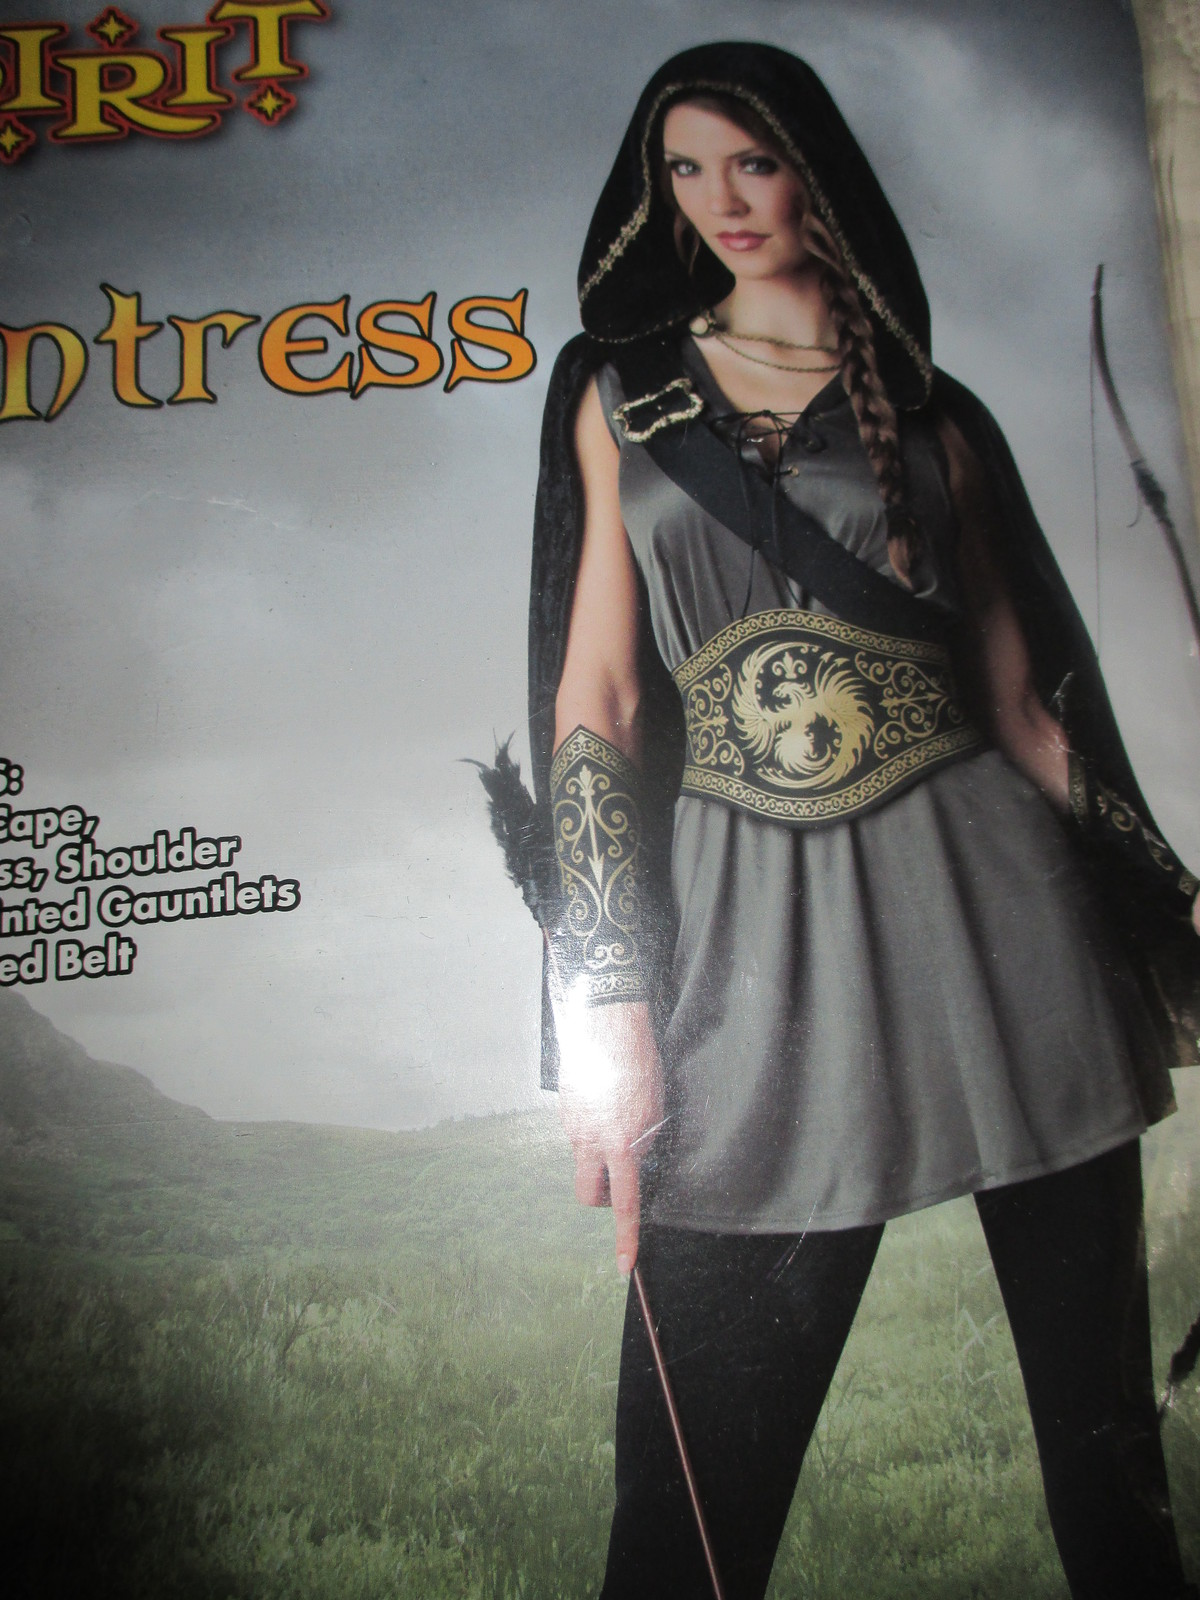 spirit huntress adult halloween costume and 50 similar items